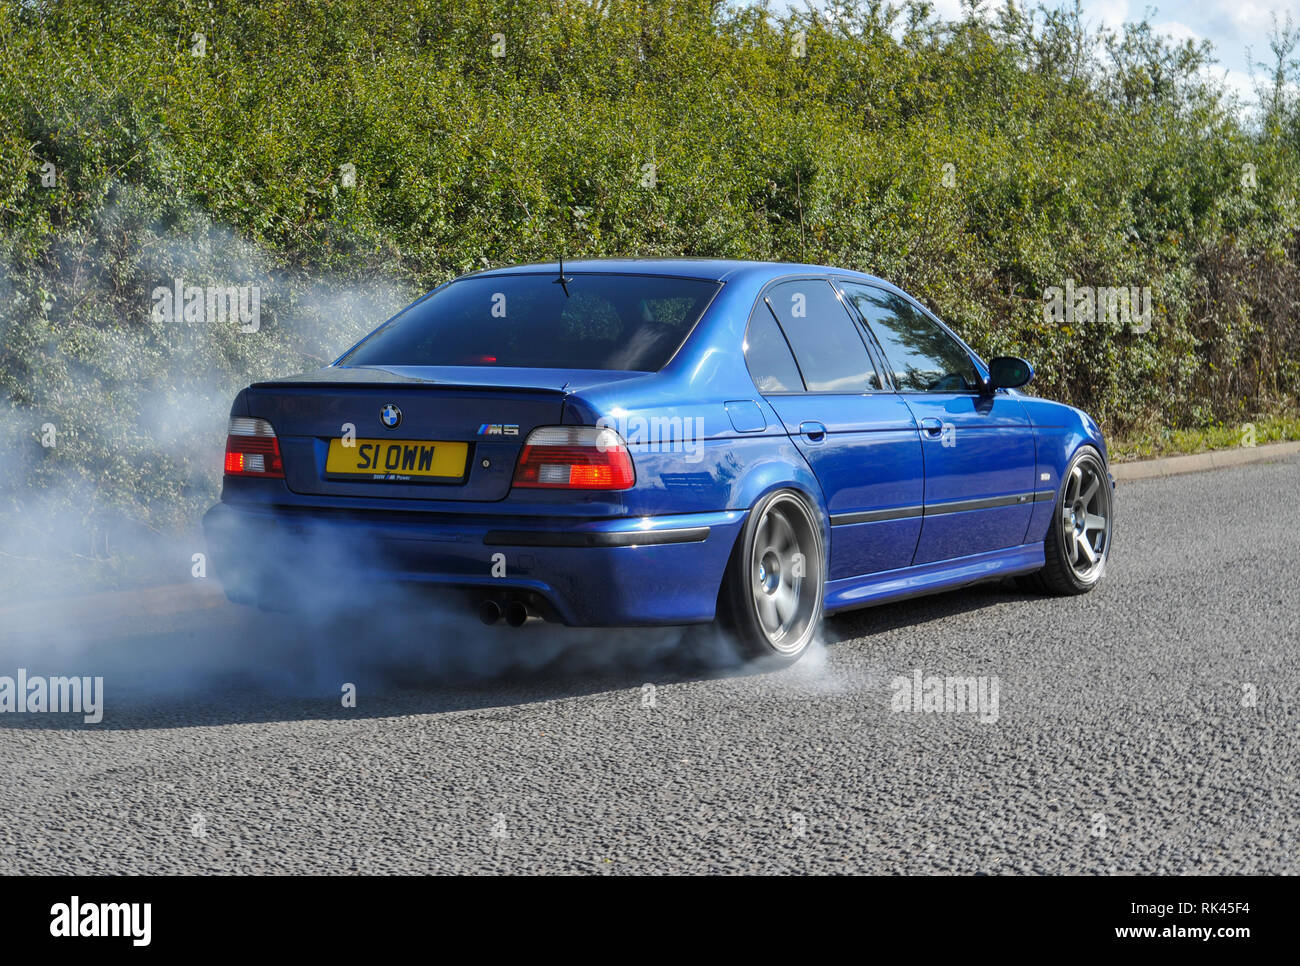 Bmw E39 High Resolution Stock Photography And Images Alamy